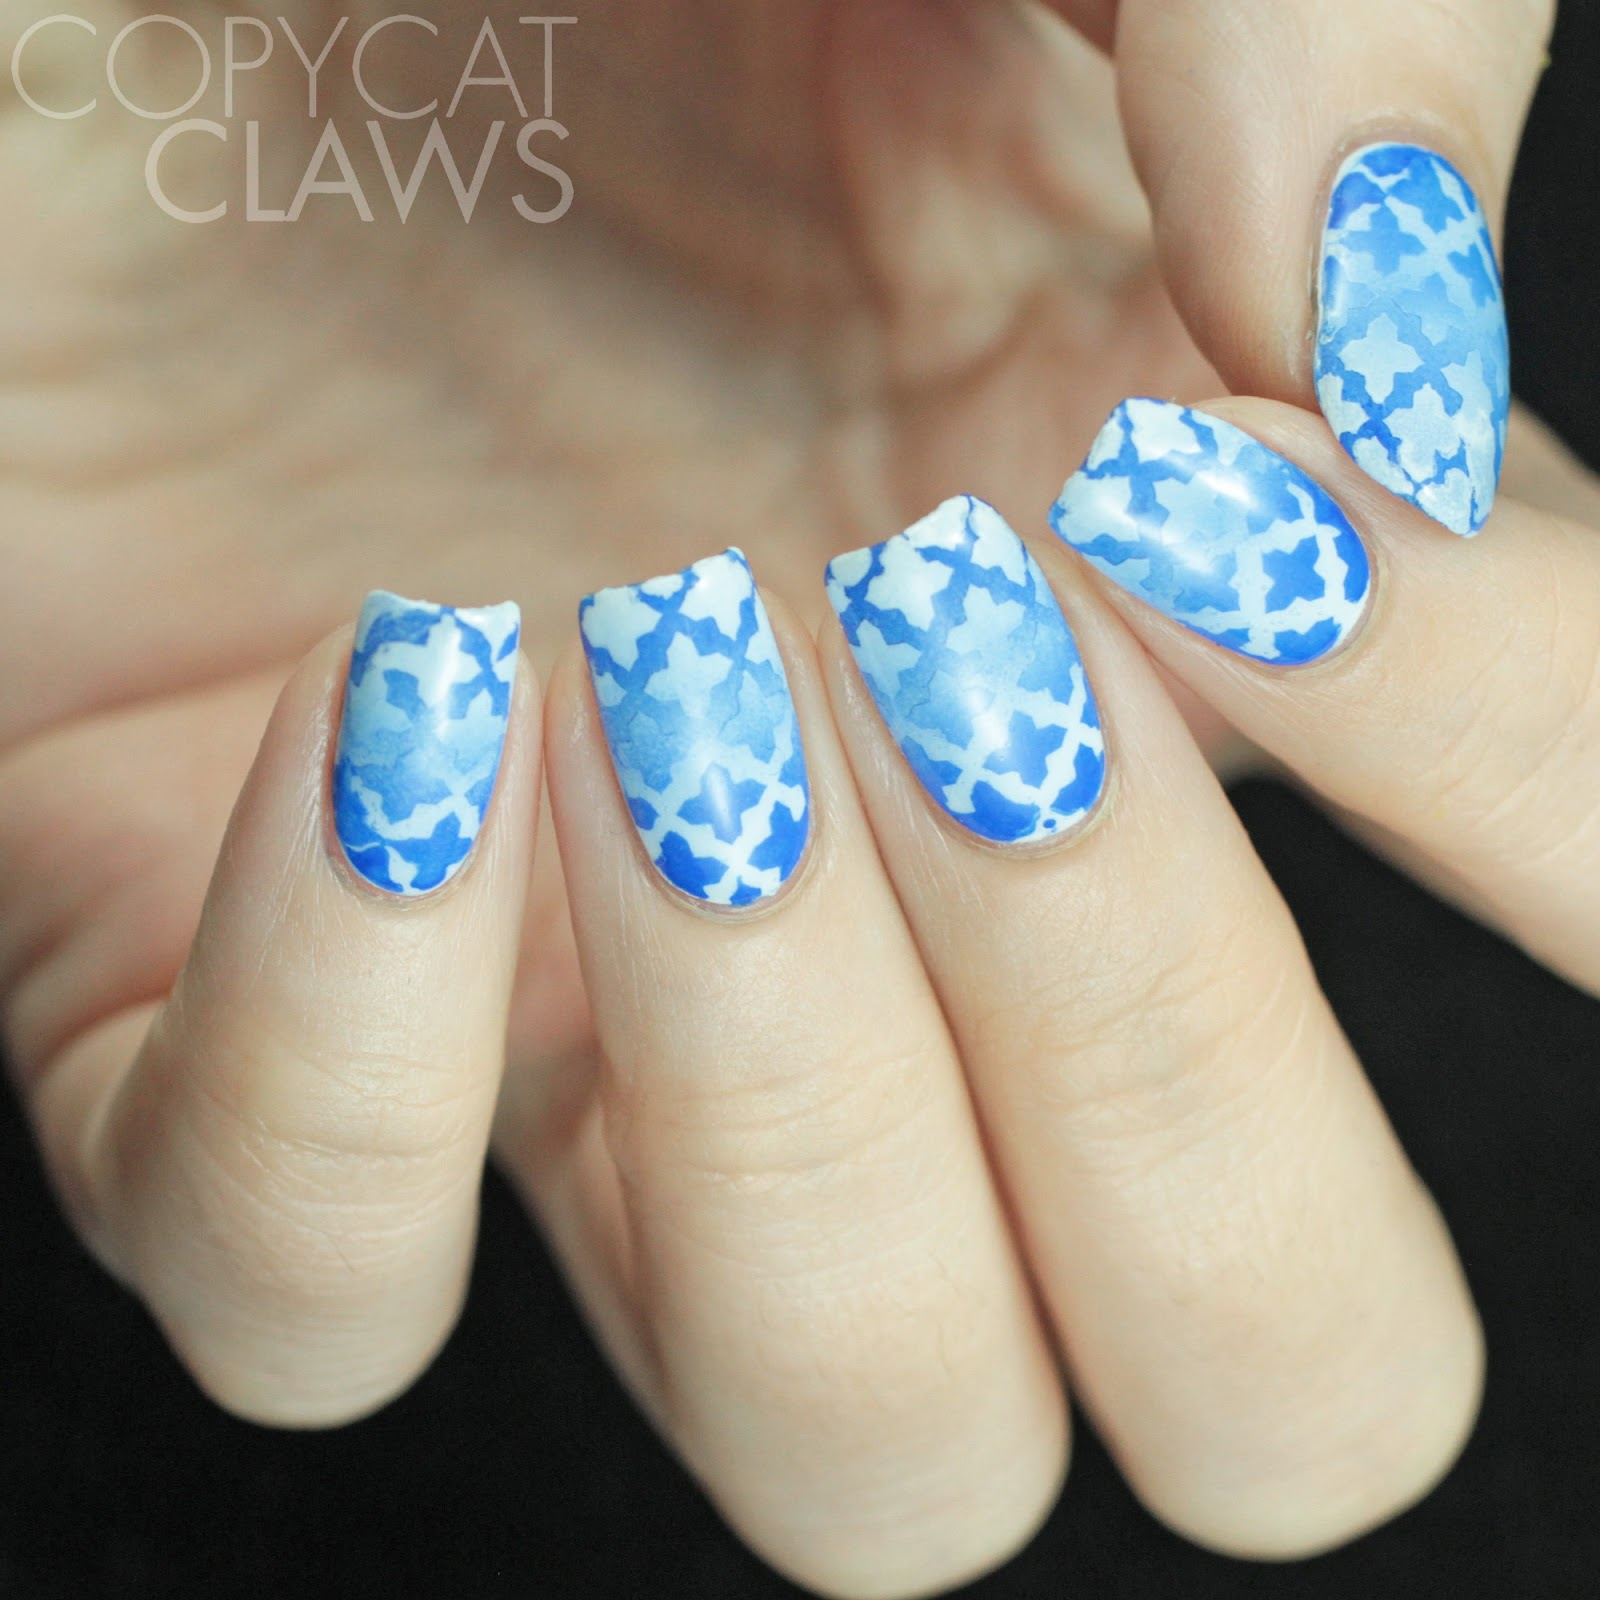 Copycat Claws: 26 Great Nail Art Ideas - Reciprocal Gradient